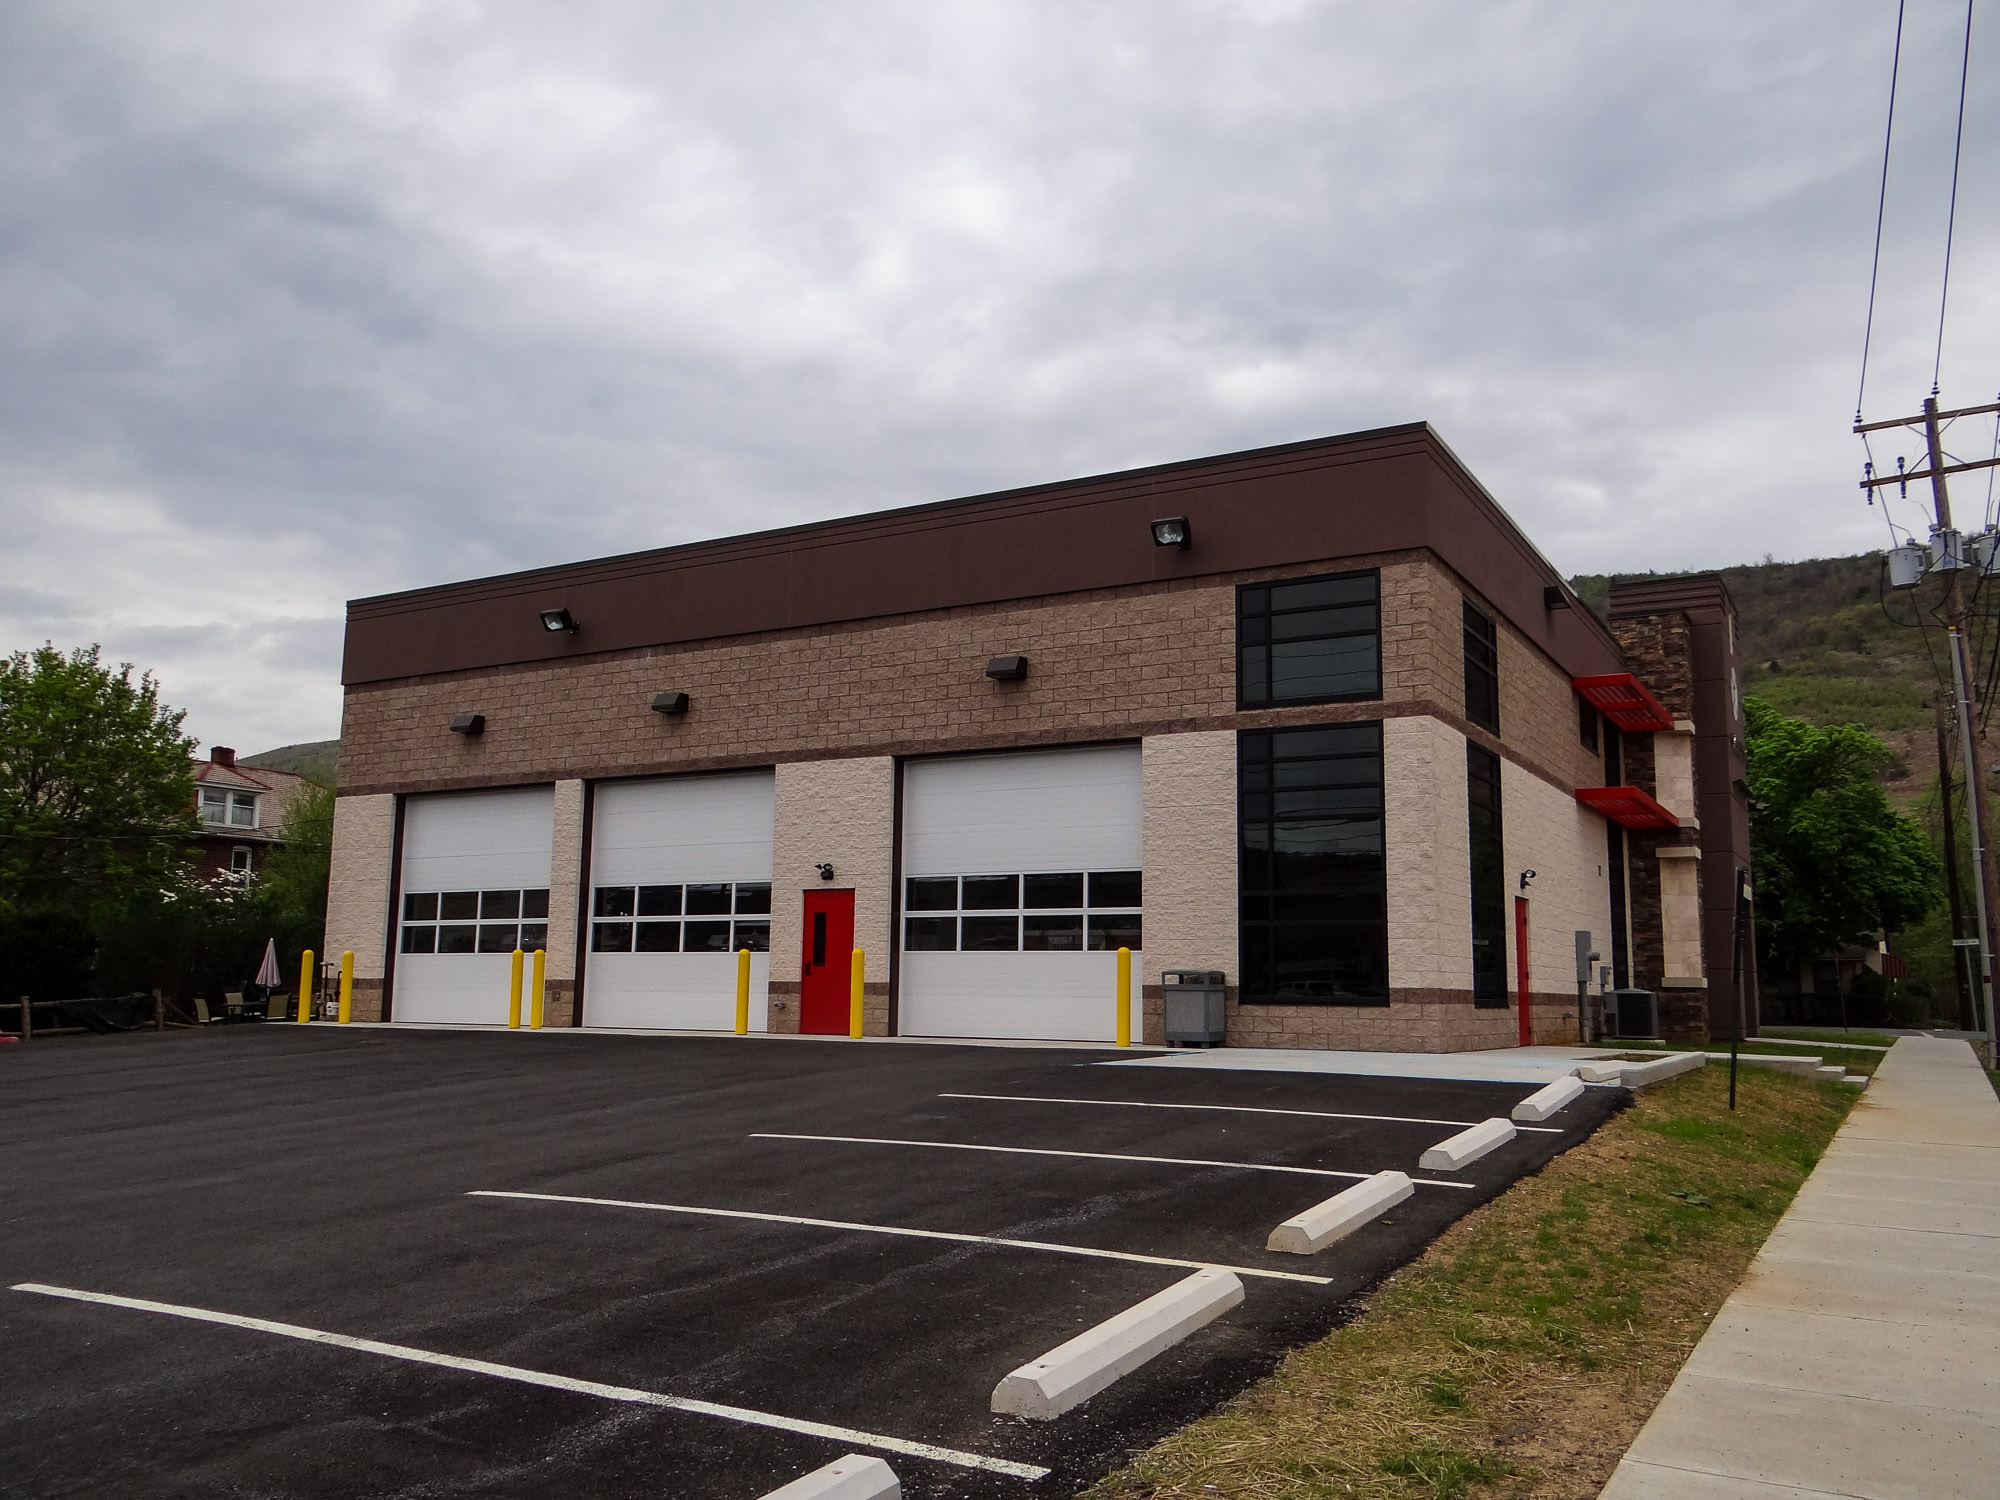 Borough of Palmerton Fire Station